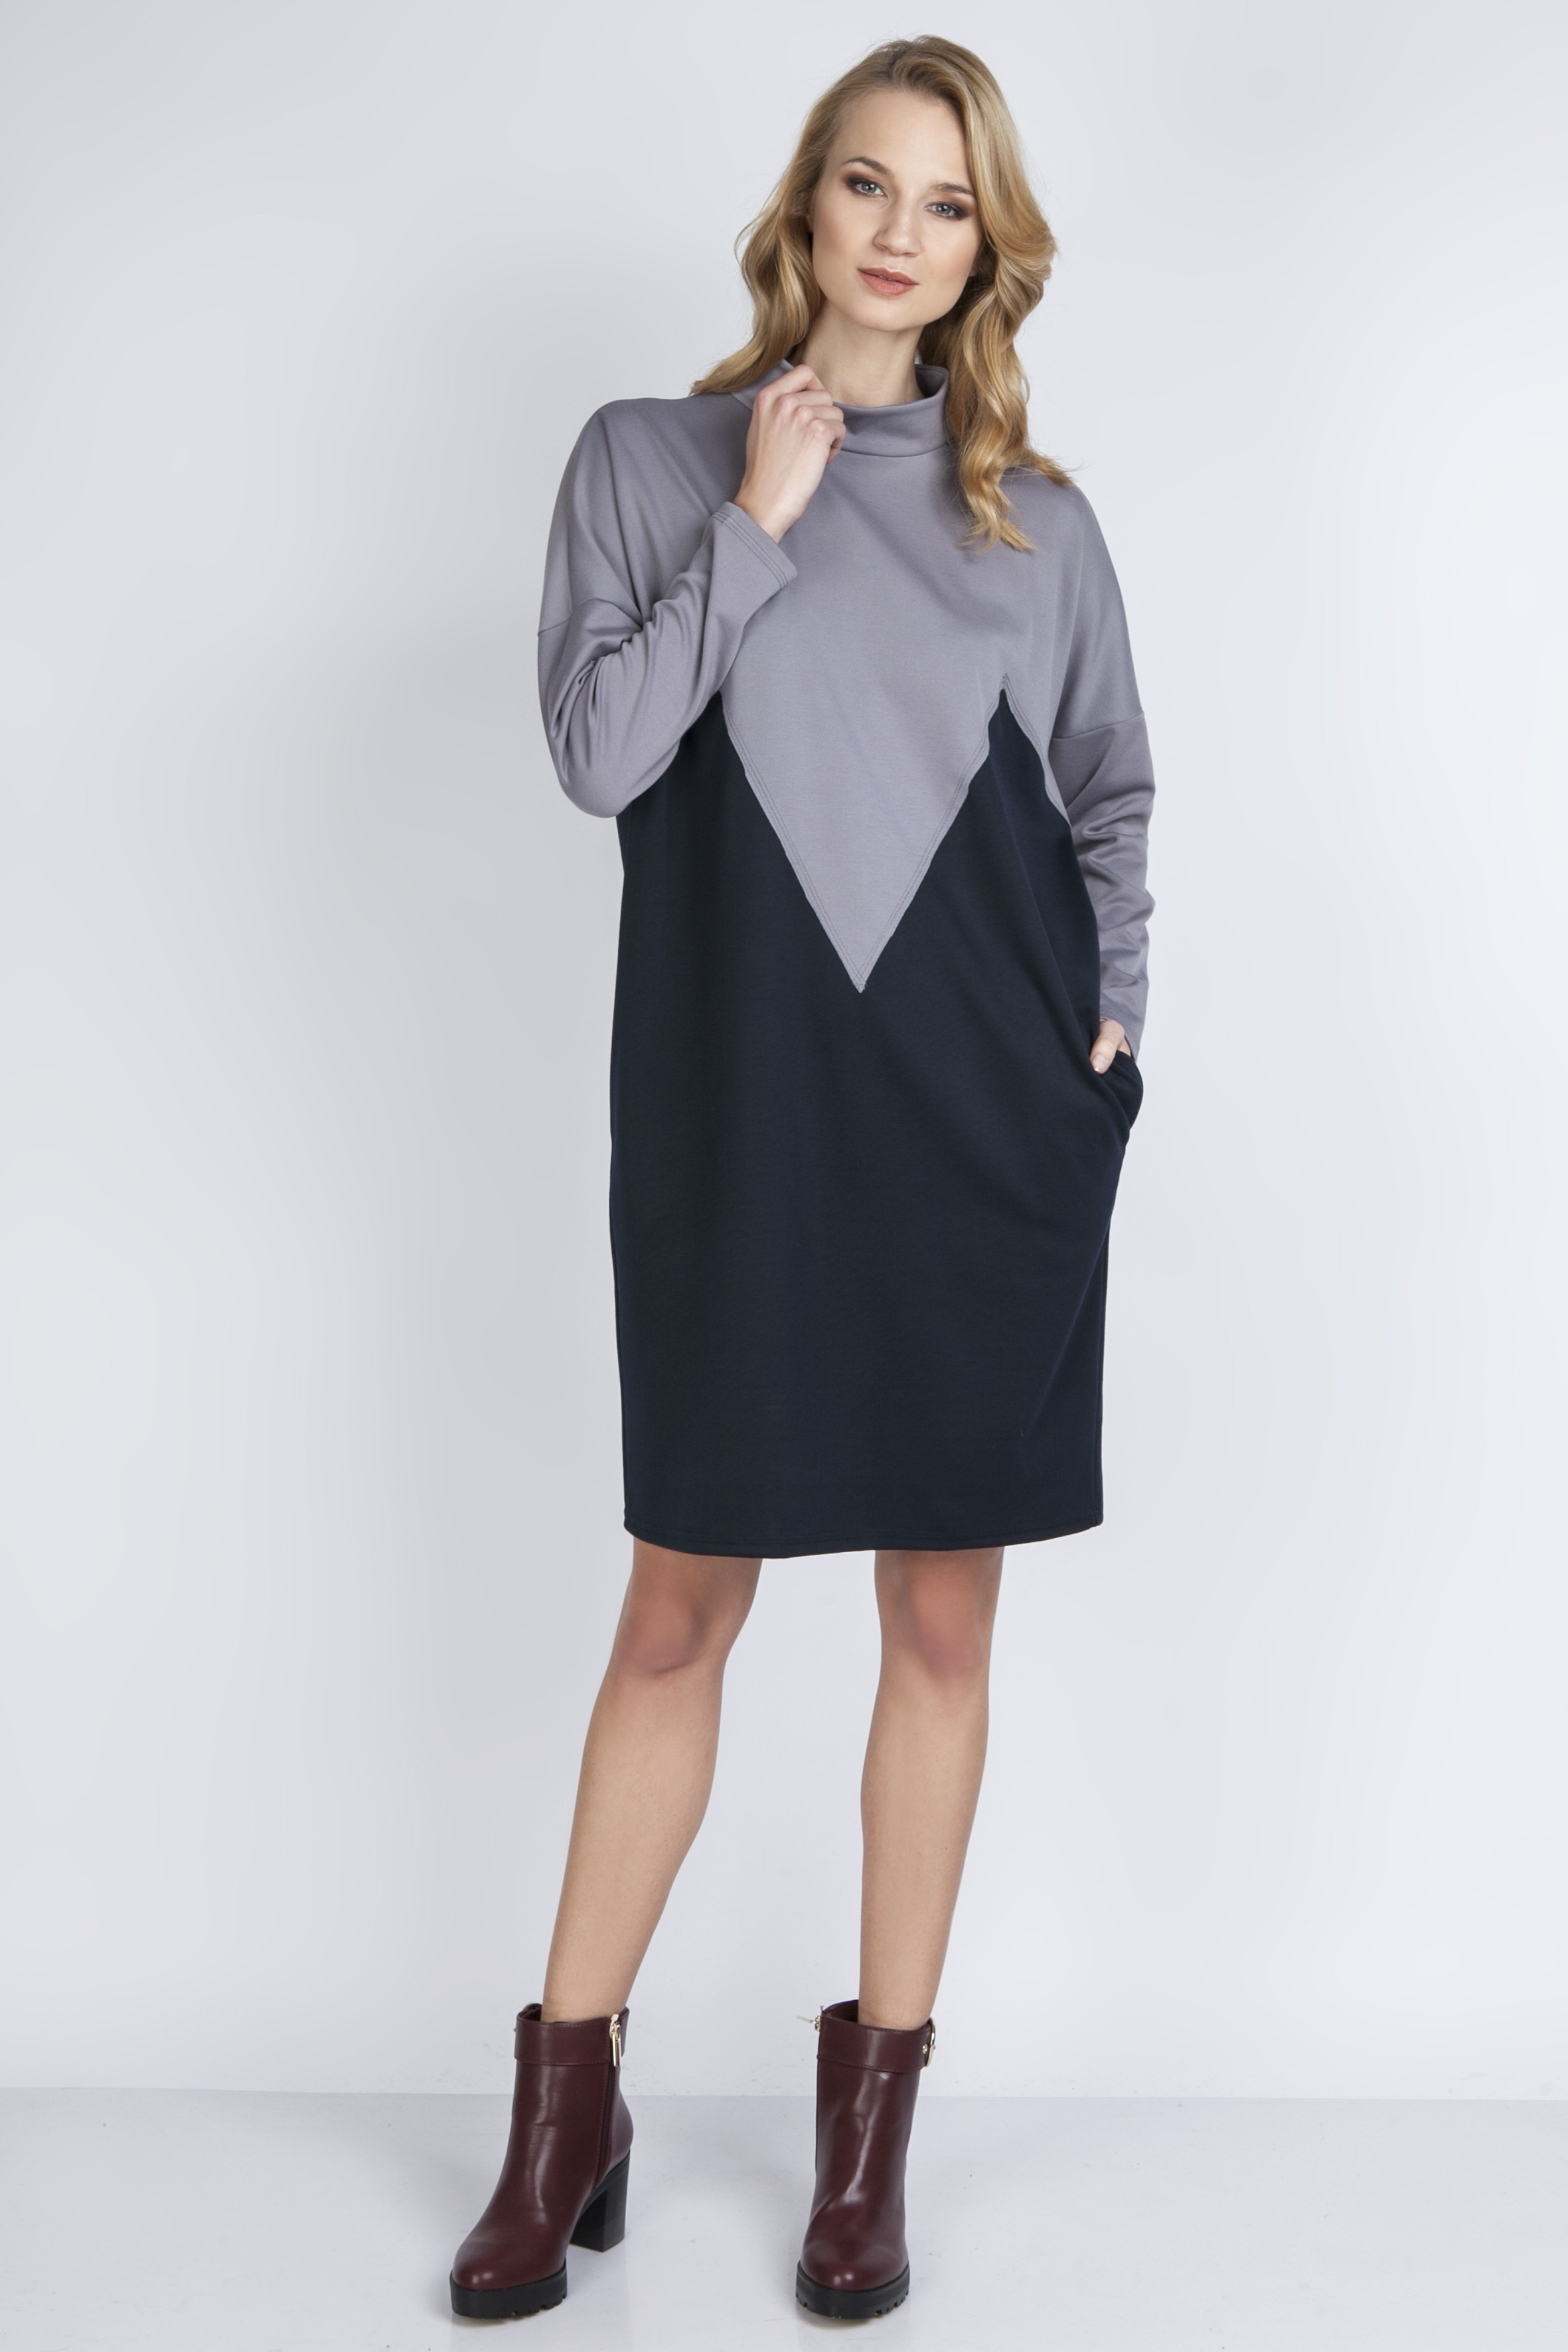 2665d0e598c1e3 Two-color dress, SUK134 gray - Lanti